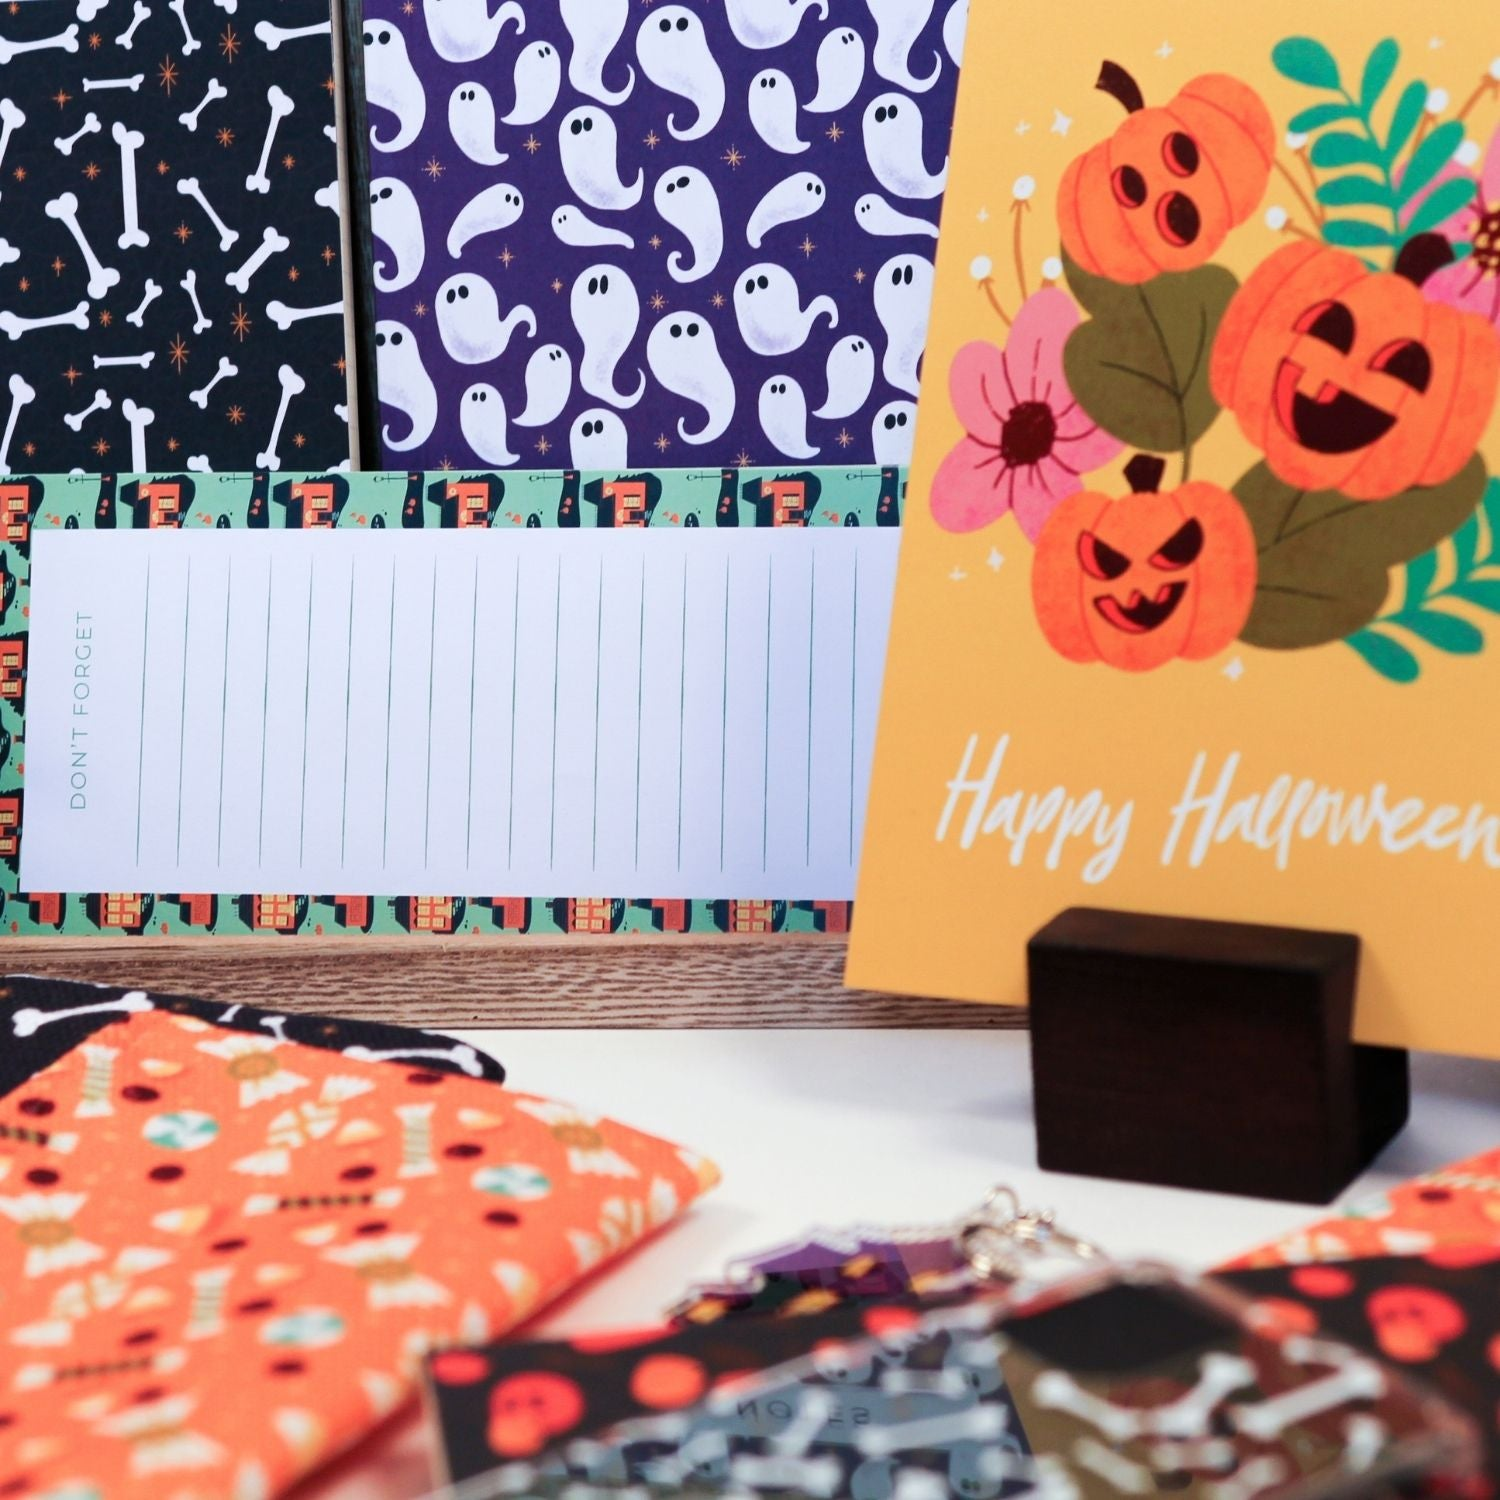 How to Make the Perfect Spooky Gift Basket for Halloween